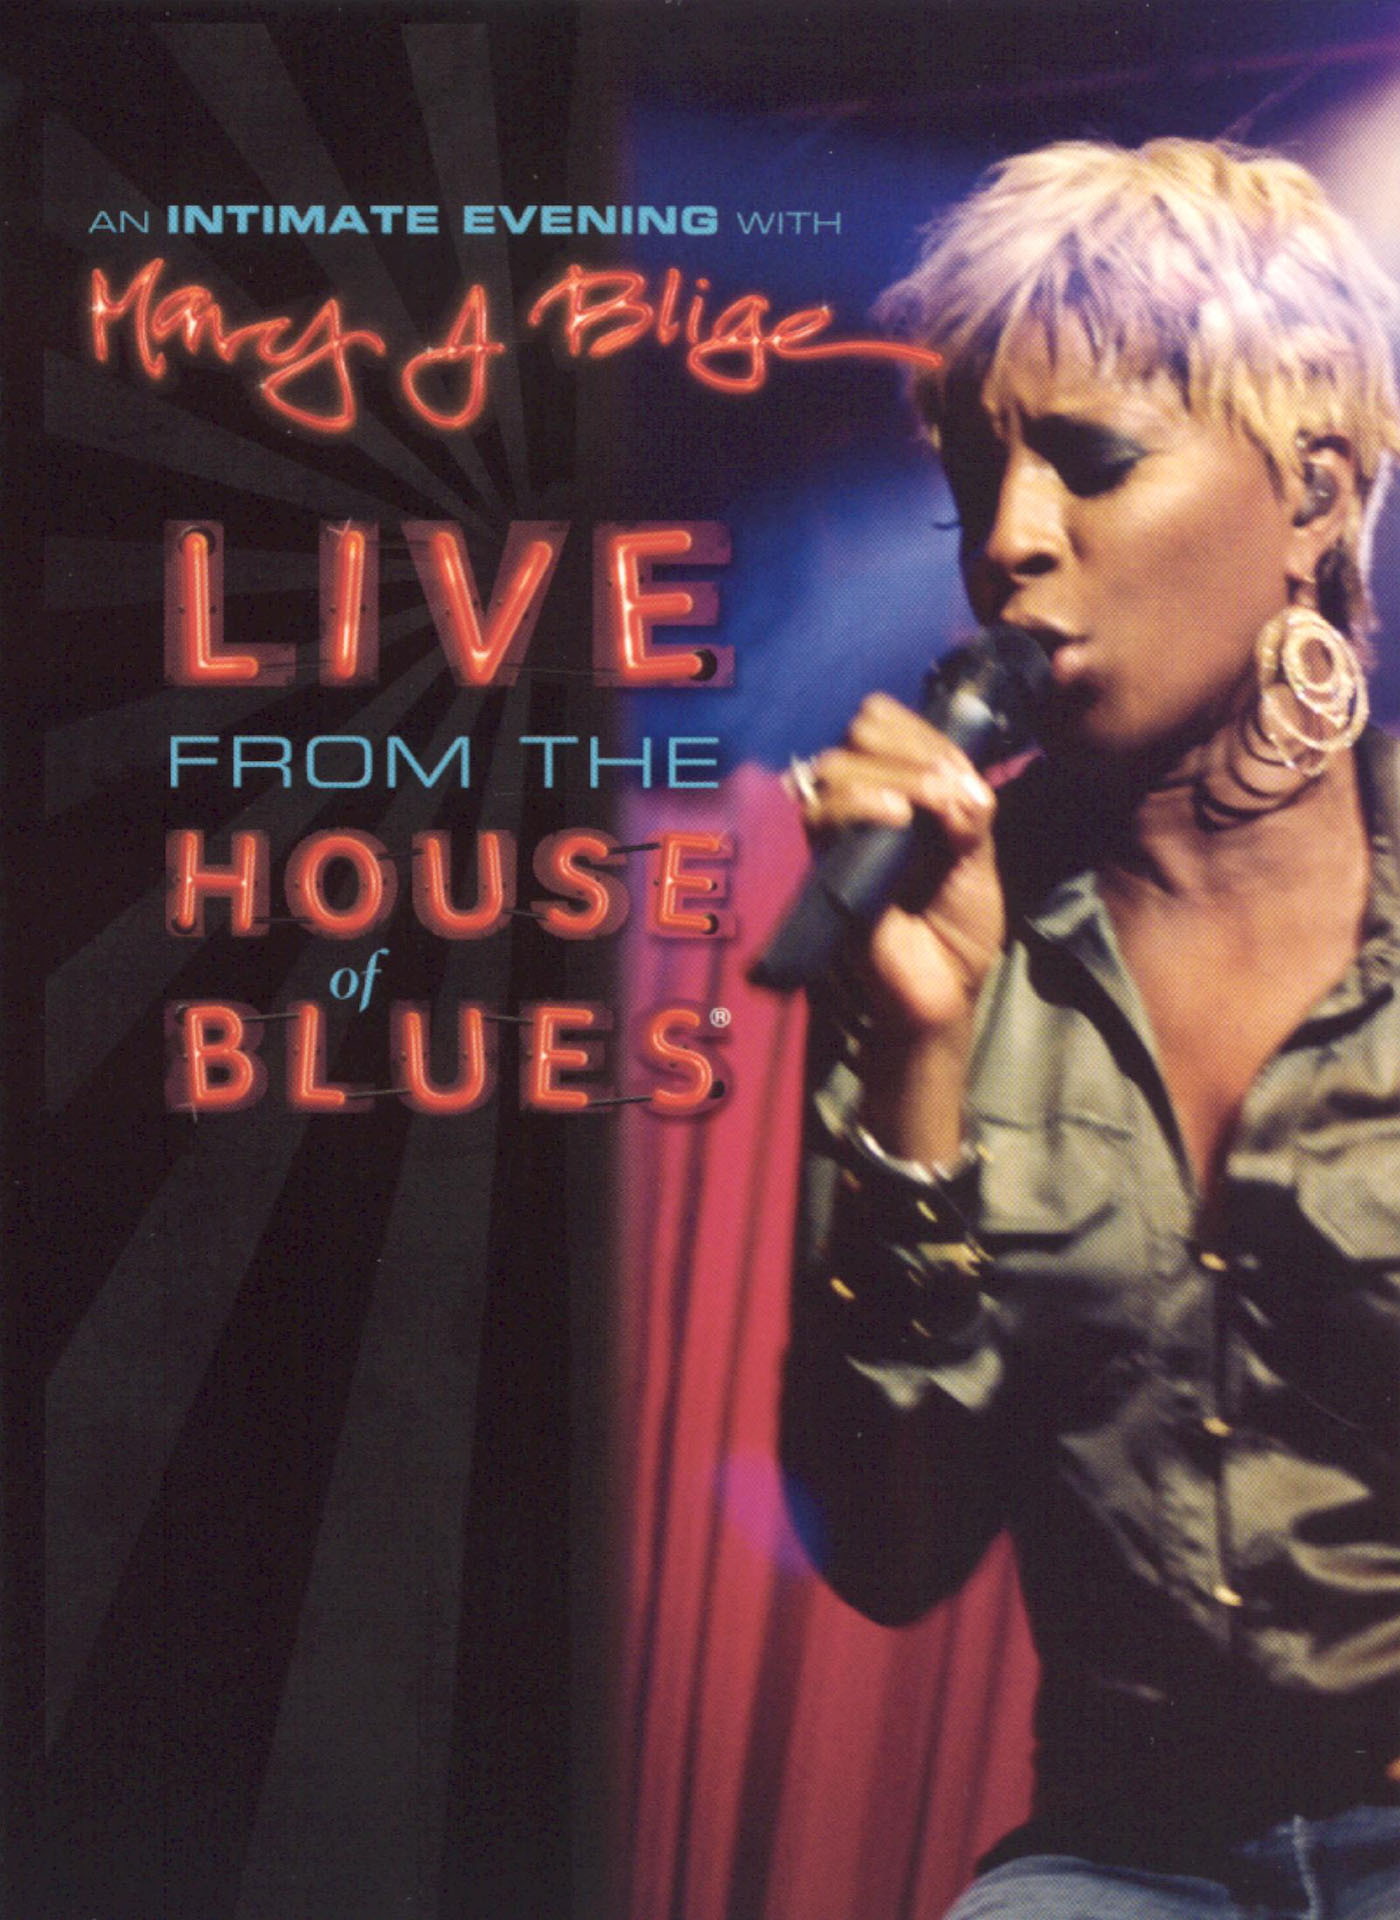 Mary J. Blige: An Intimate Evening With Mary J. Blige - Live From the House of Blues